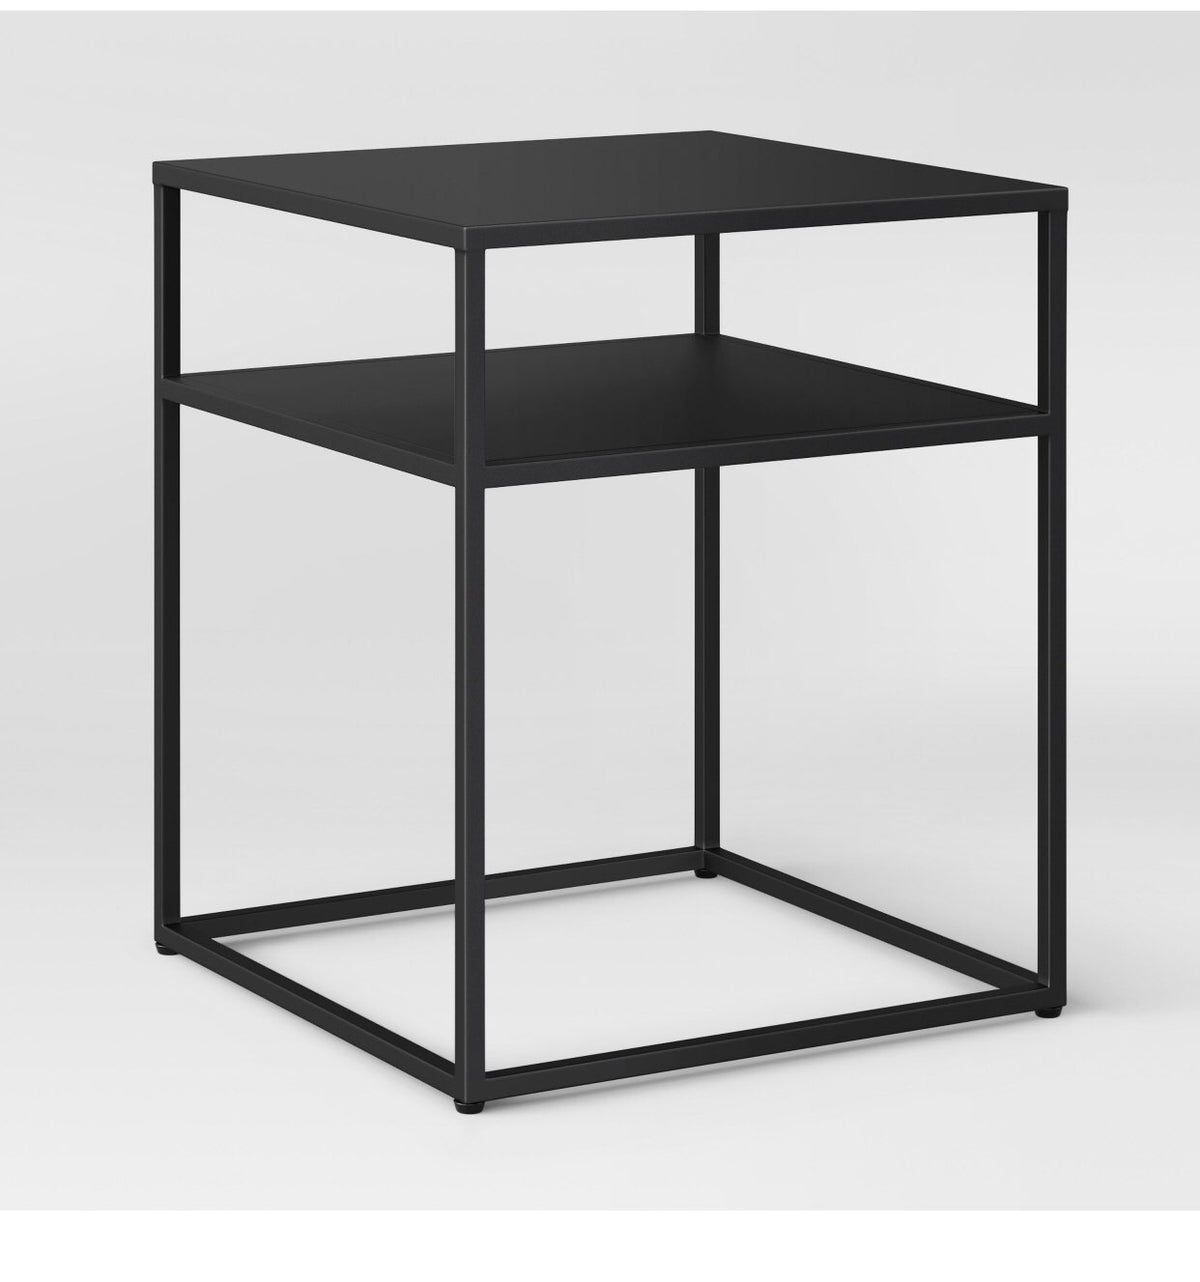 Glasgow metal end table black  Metal end tables, Coffee table